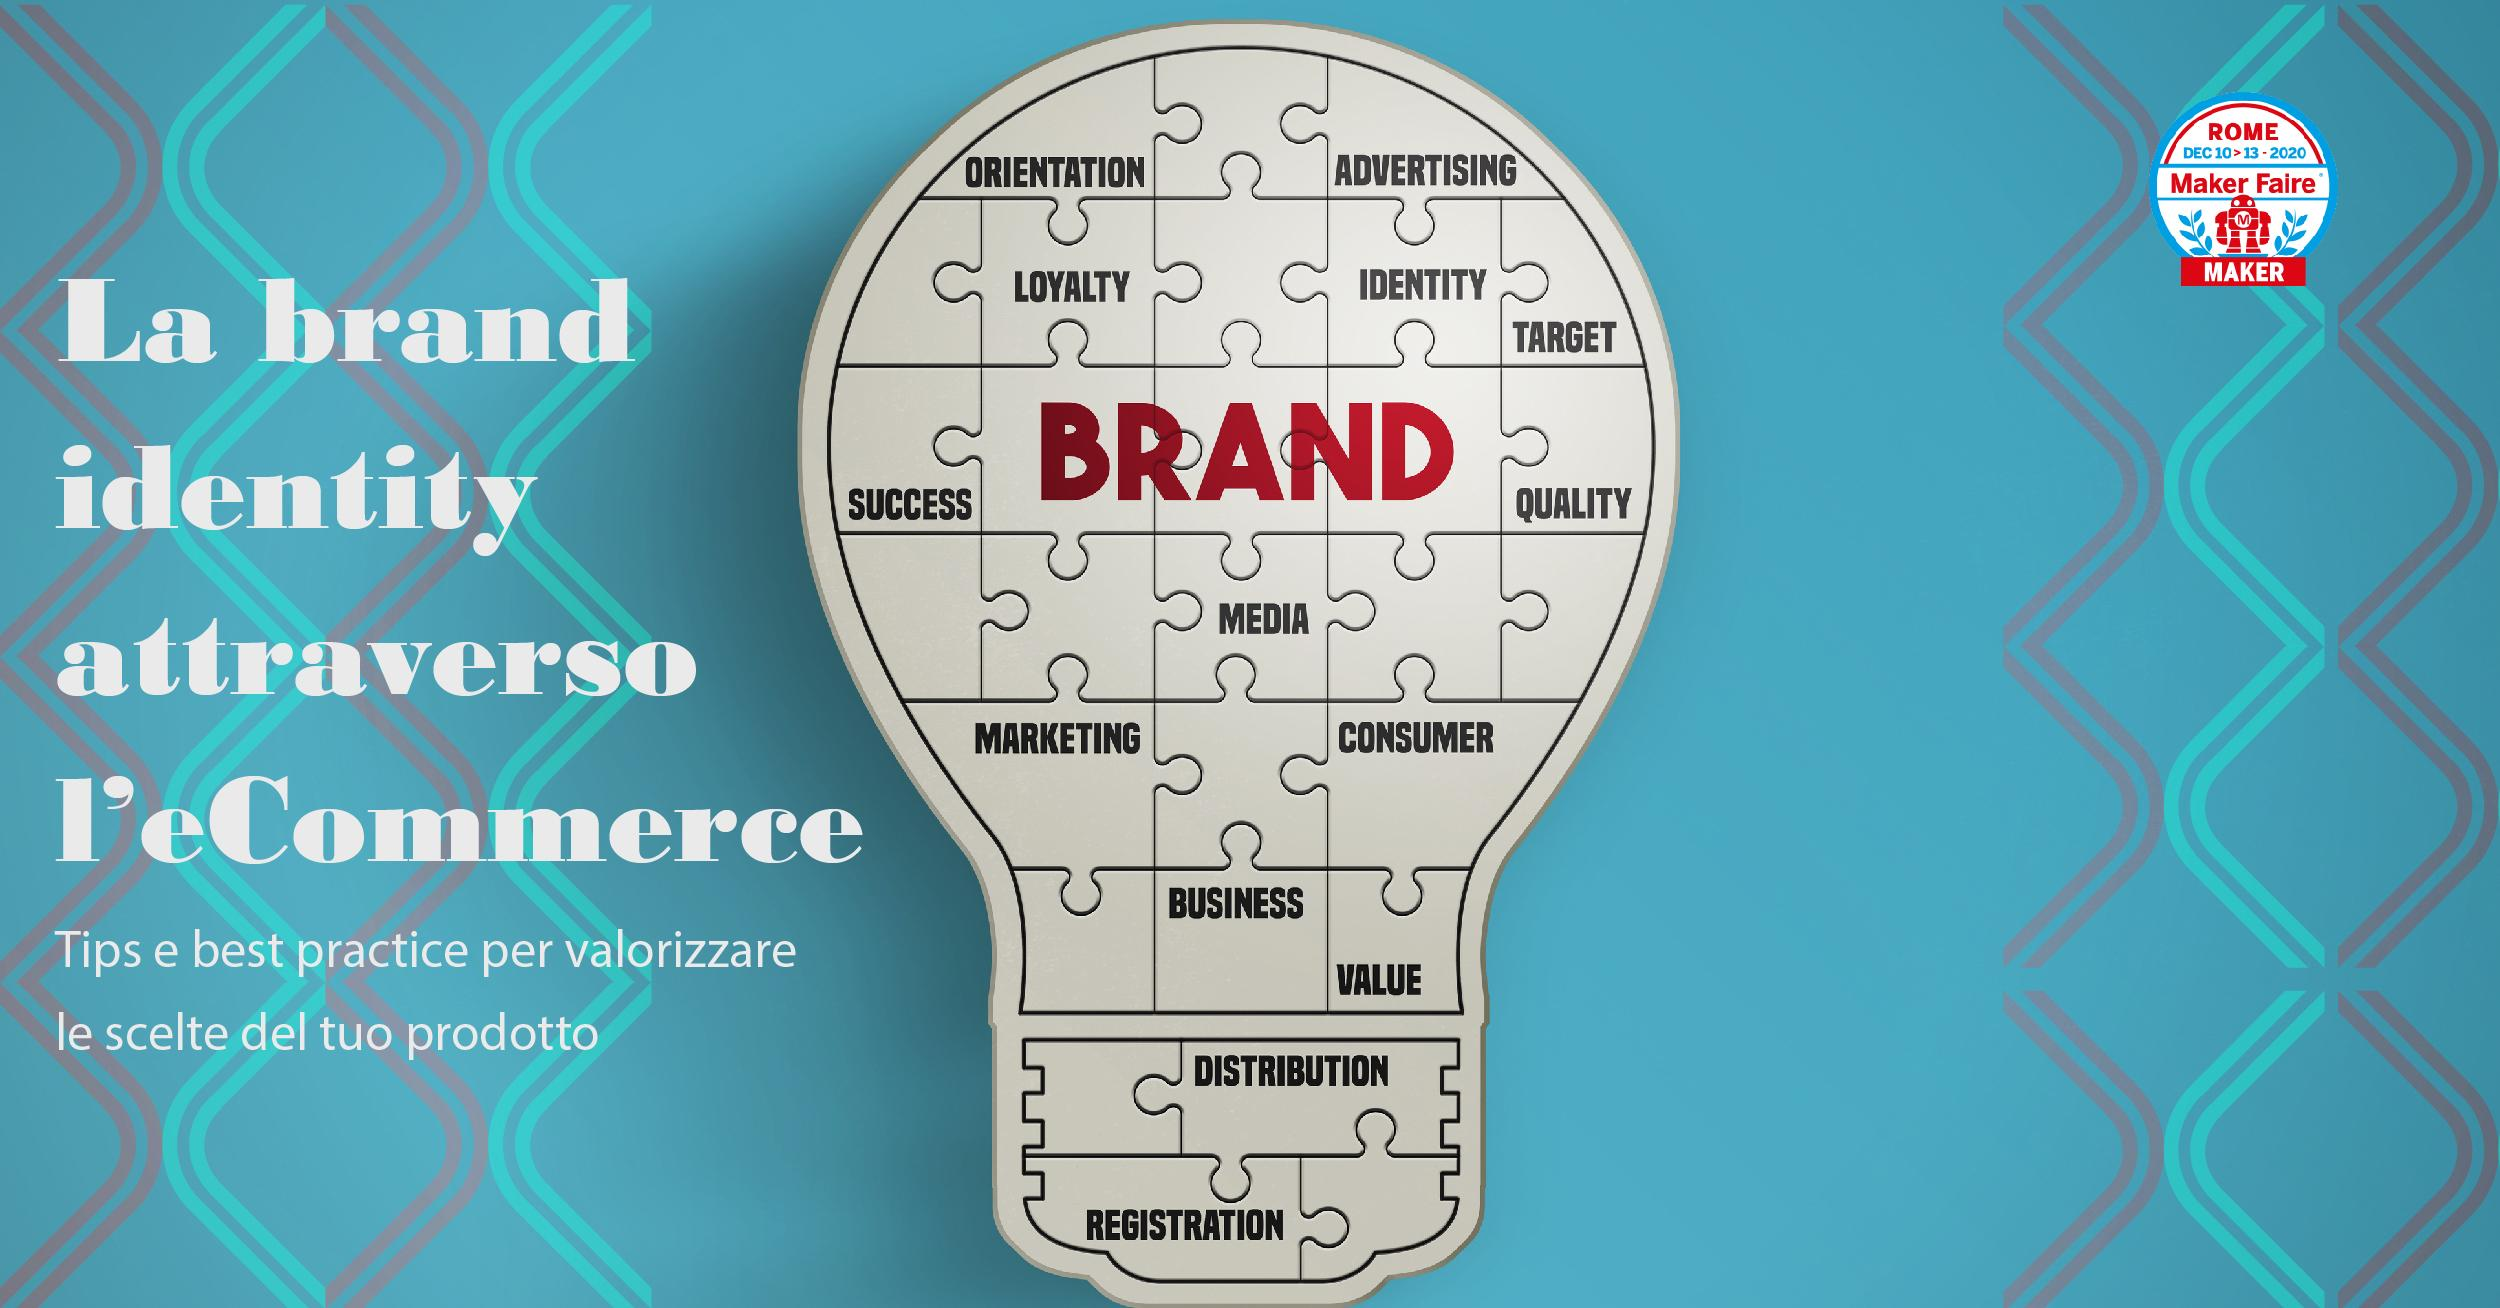 Brand identity through eCommerce_ Tips and best practices to enhance the choices of your product